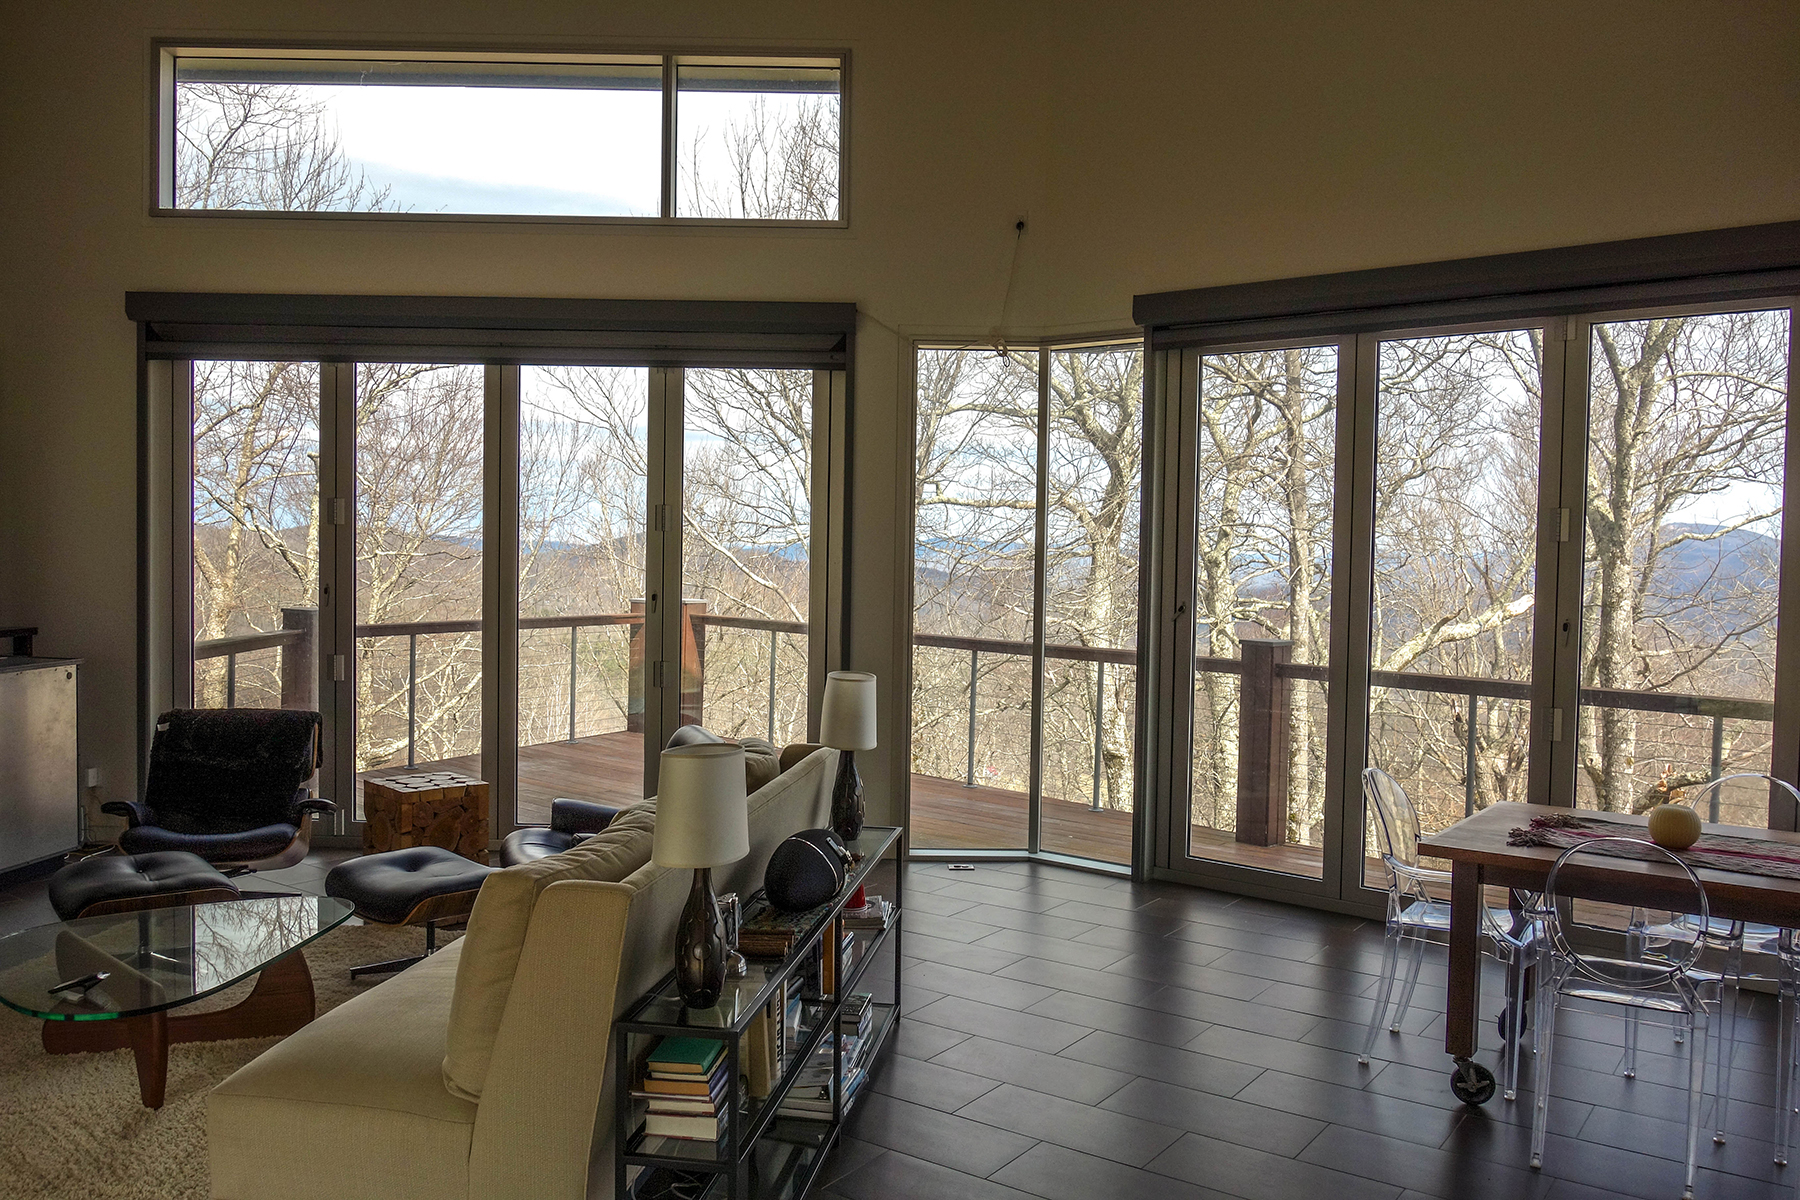 Single Family Home for Active at SEVEN DEVILS 268 East Rocky Top Trl Seven Devils, North Carolina 28604 United States